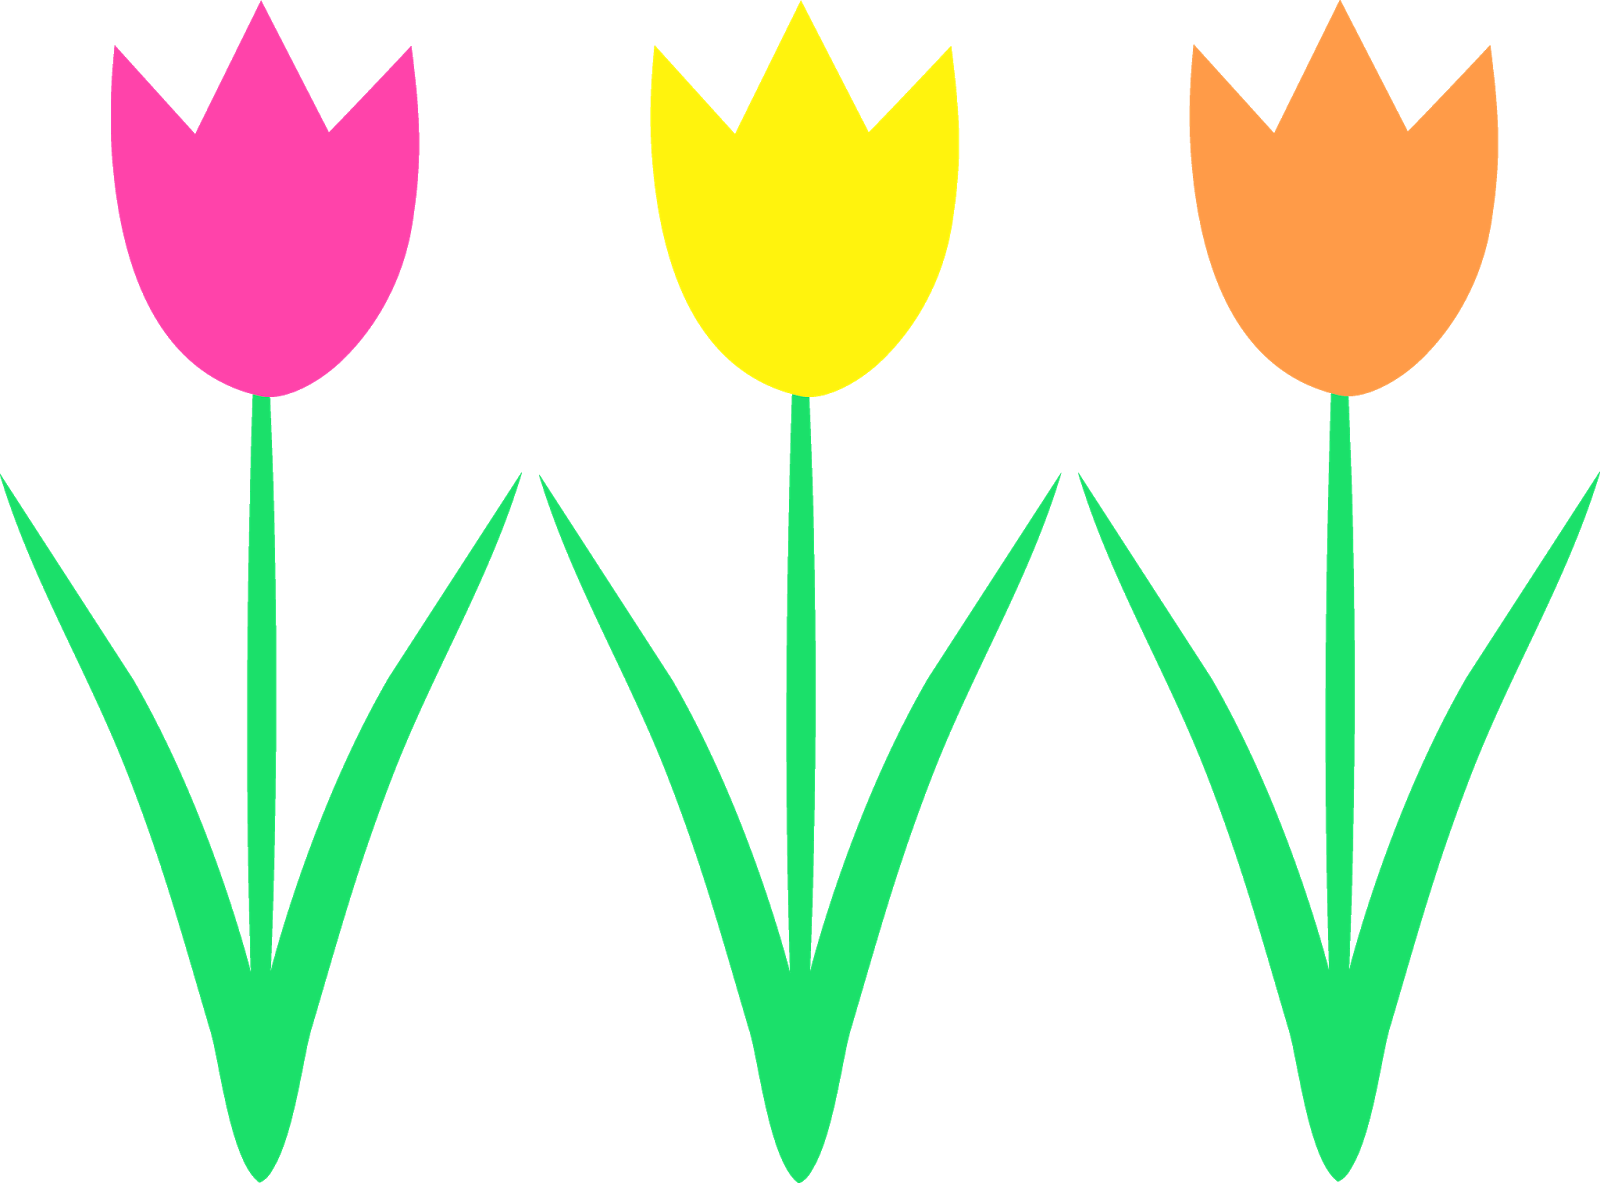 C:\Users\public.CARY\AppData\Local\Microsoft\Windows\Temporary Internet Files\Content.IE5\M40R8EK7\tulips_spring_clip_art[1].png